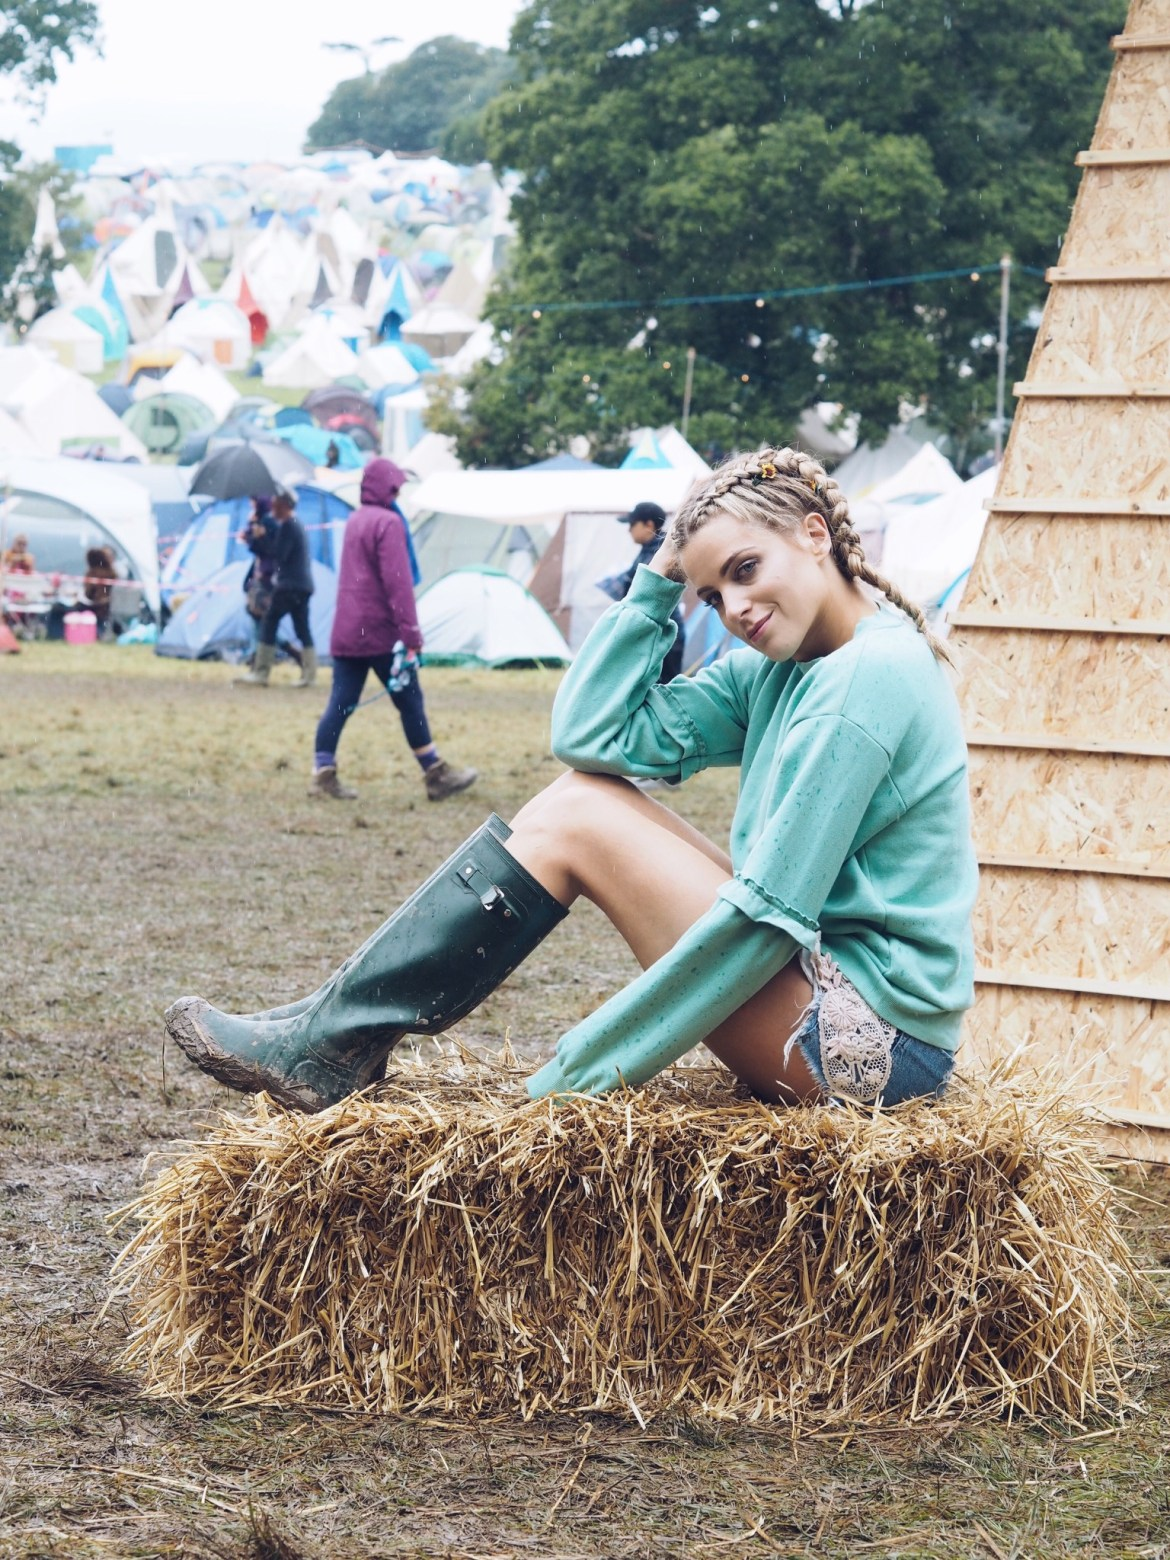 Olivia Cox, Port Eliot, festival, Cornwall, fashion, beauty, braids, Lyndell Mansfield, schwarzkopf, got2b, live color, pastel hair